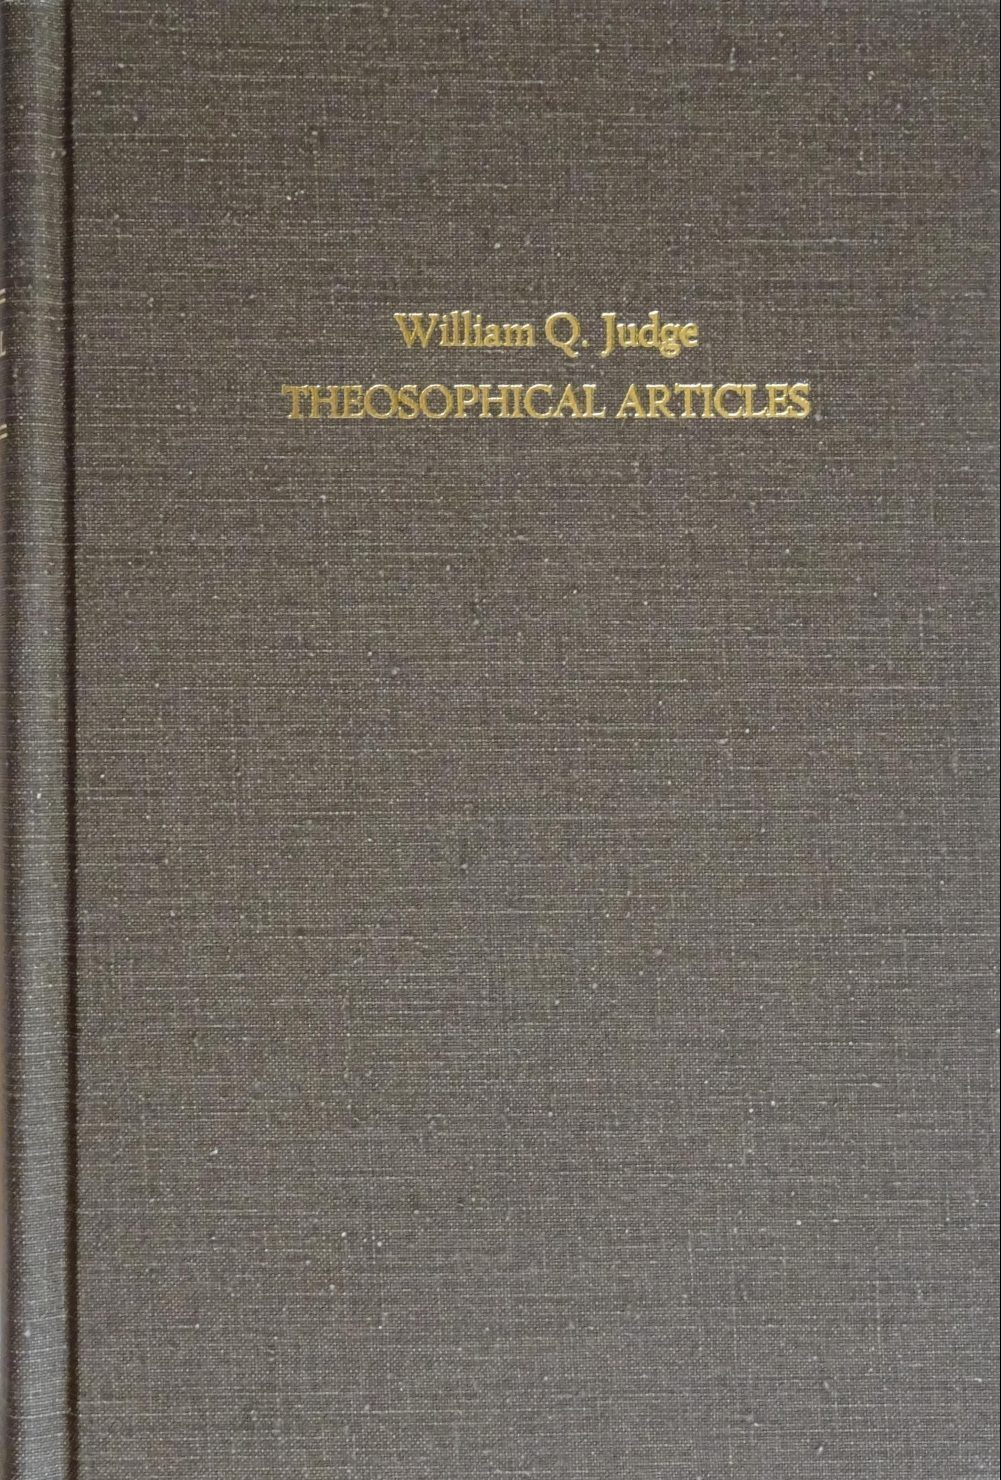 W Q Judge 2 volumes of collected articles